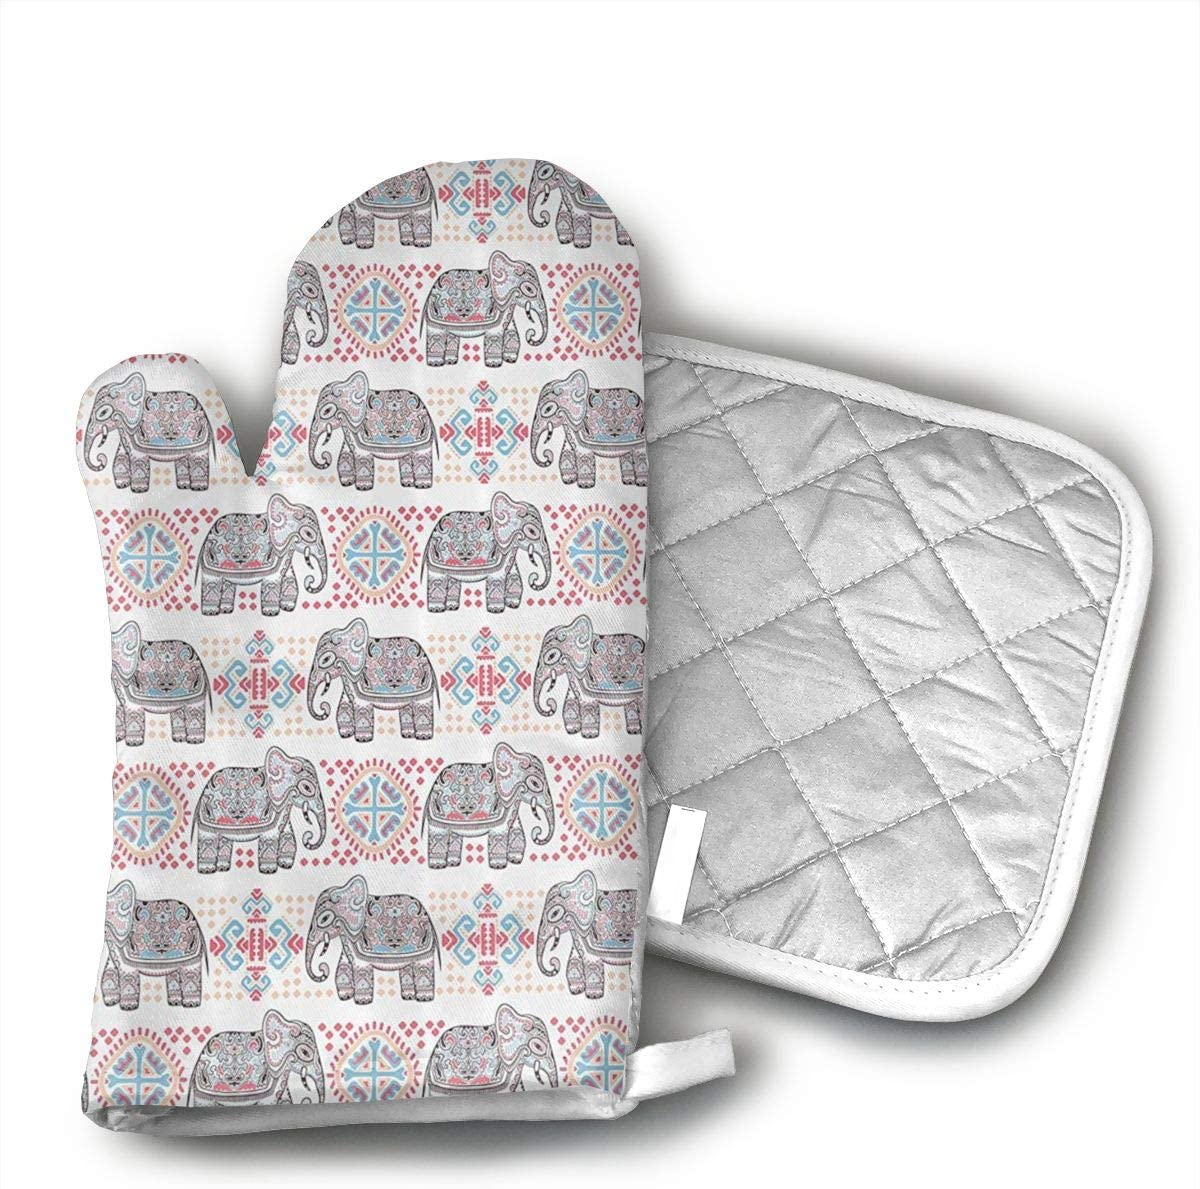 Ethnic Asian Safari Theme Animal Elephant Oven Mitts and Pot Holders Heat Resistant Gloves to Oven Gloves for Safe BBQ Cook Baking Grilling